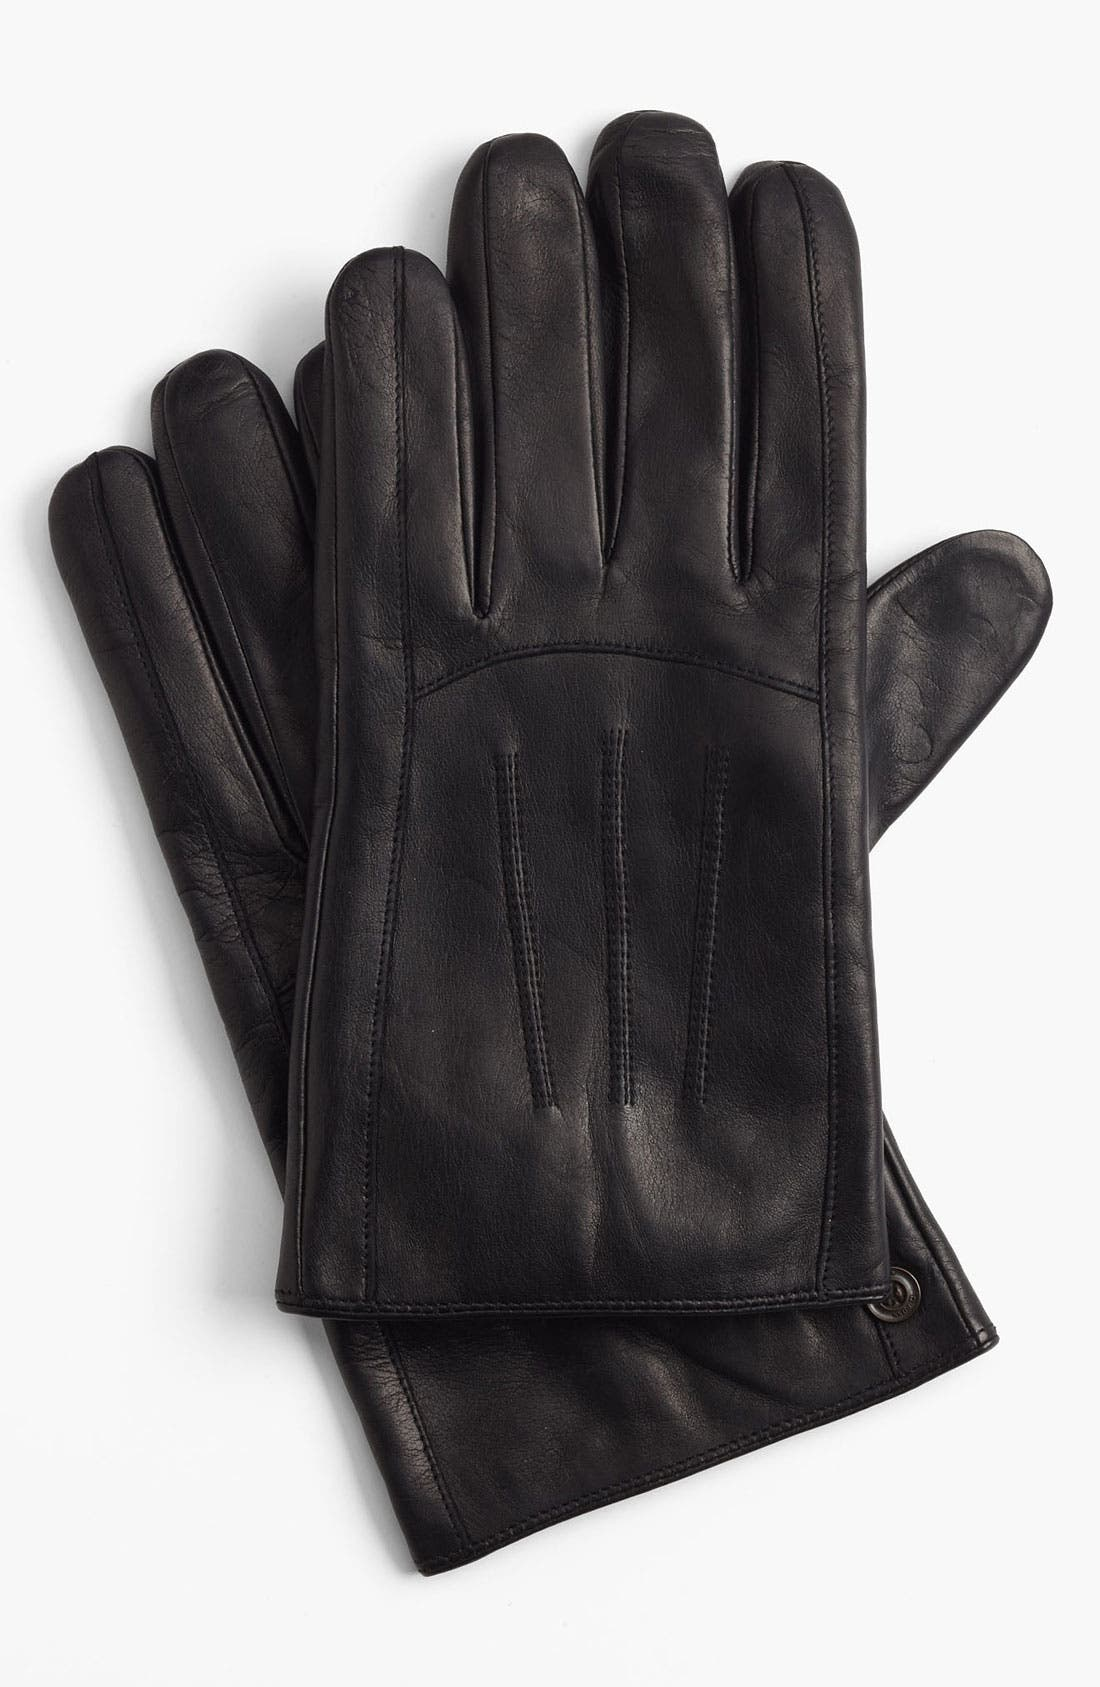 Alternate Image 1 Selected - BOSS Black 'Eru' Leather Gloves